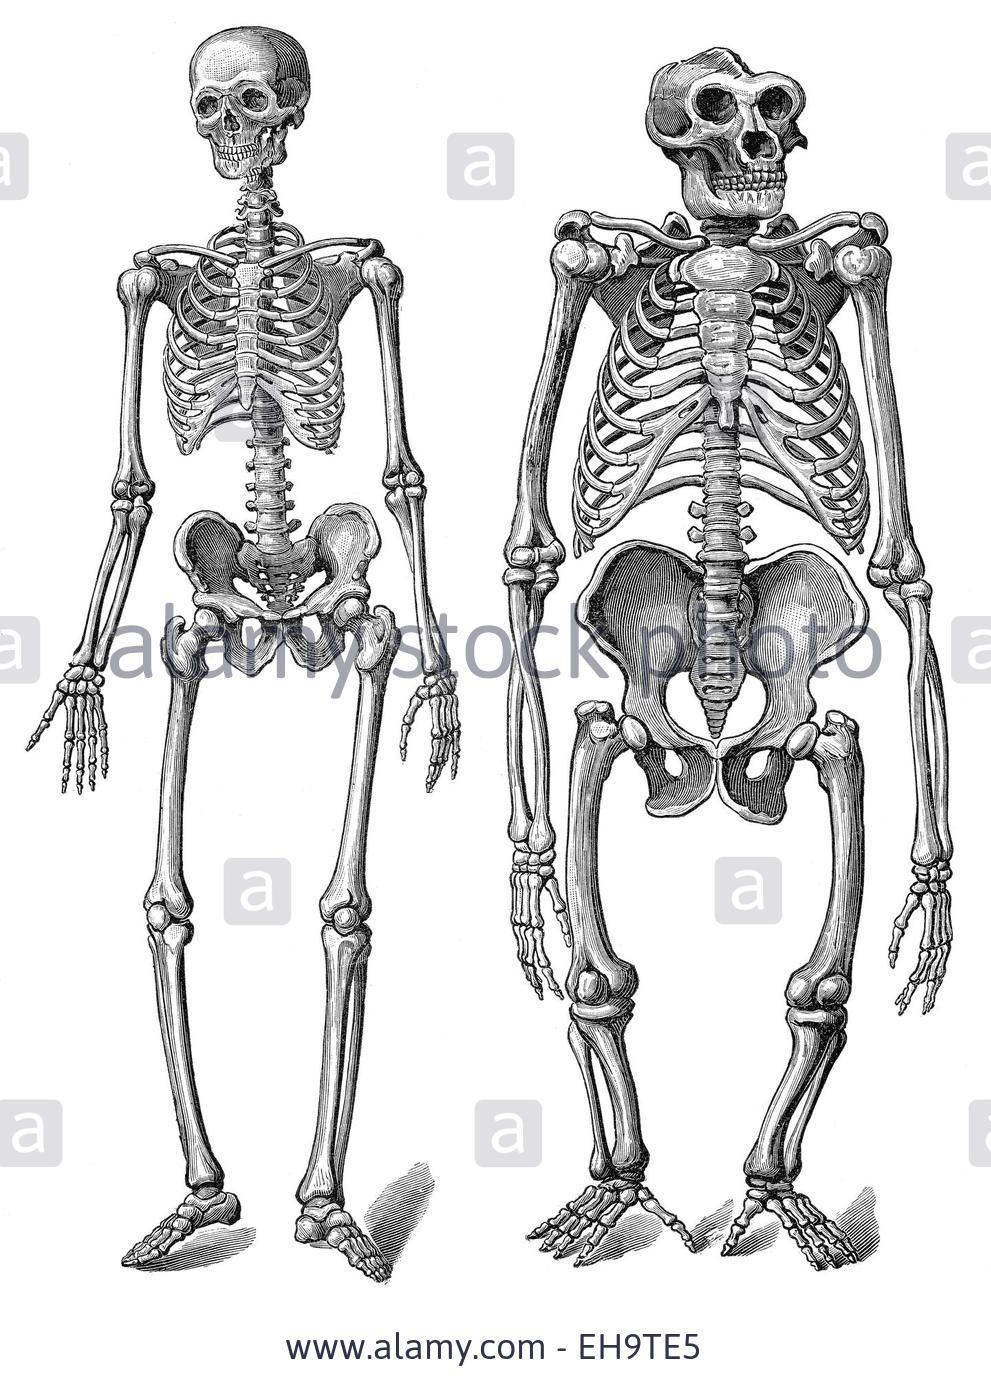 the human skeleton as compared to a gorilla skeleton, anatomy, Skeleton